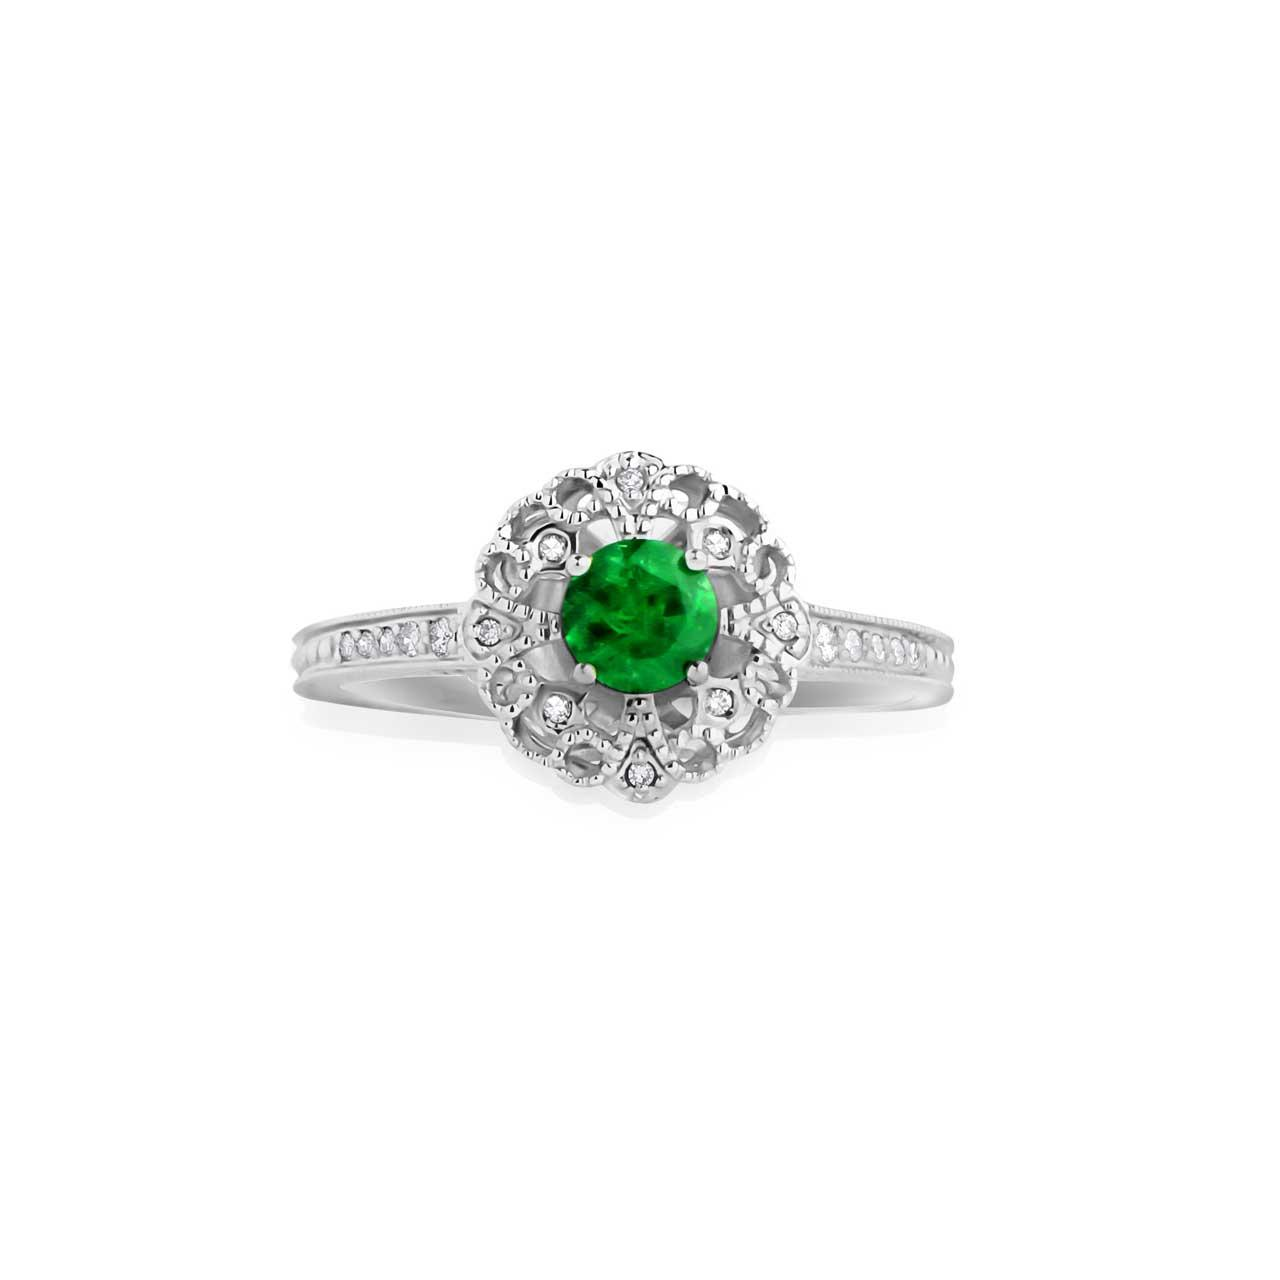 Emerald engraved gold ring 2